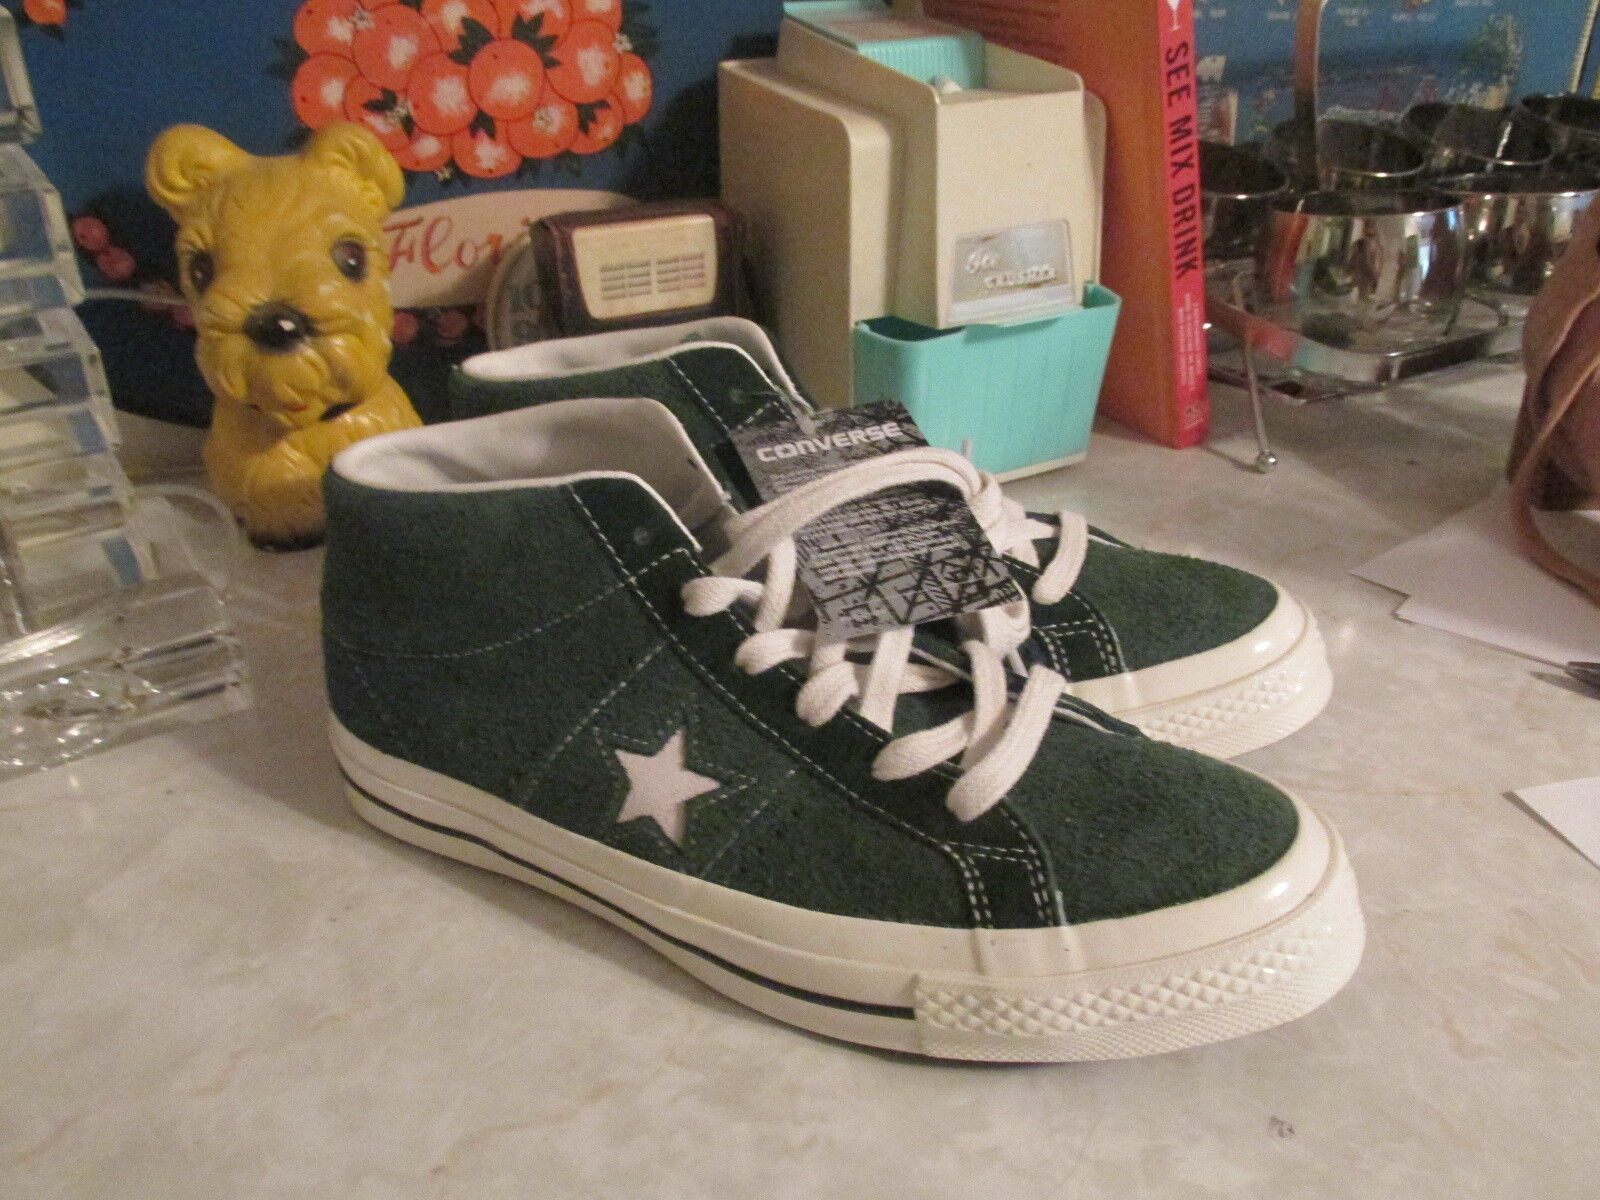 converse one star chuck taylor green mid top sneakers suede men's 7 womens 9